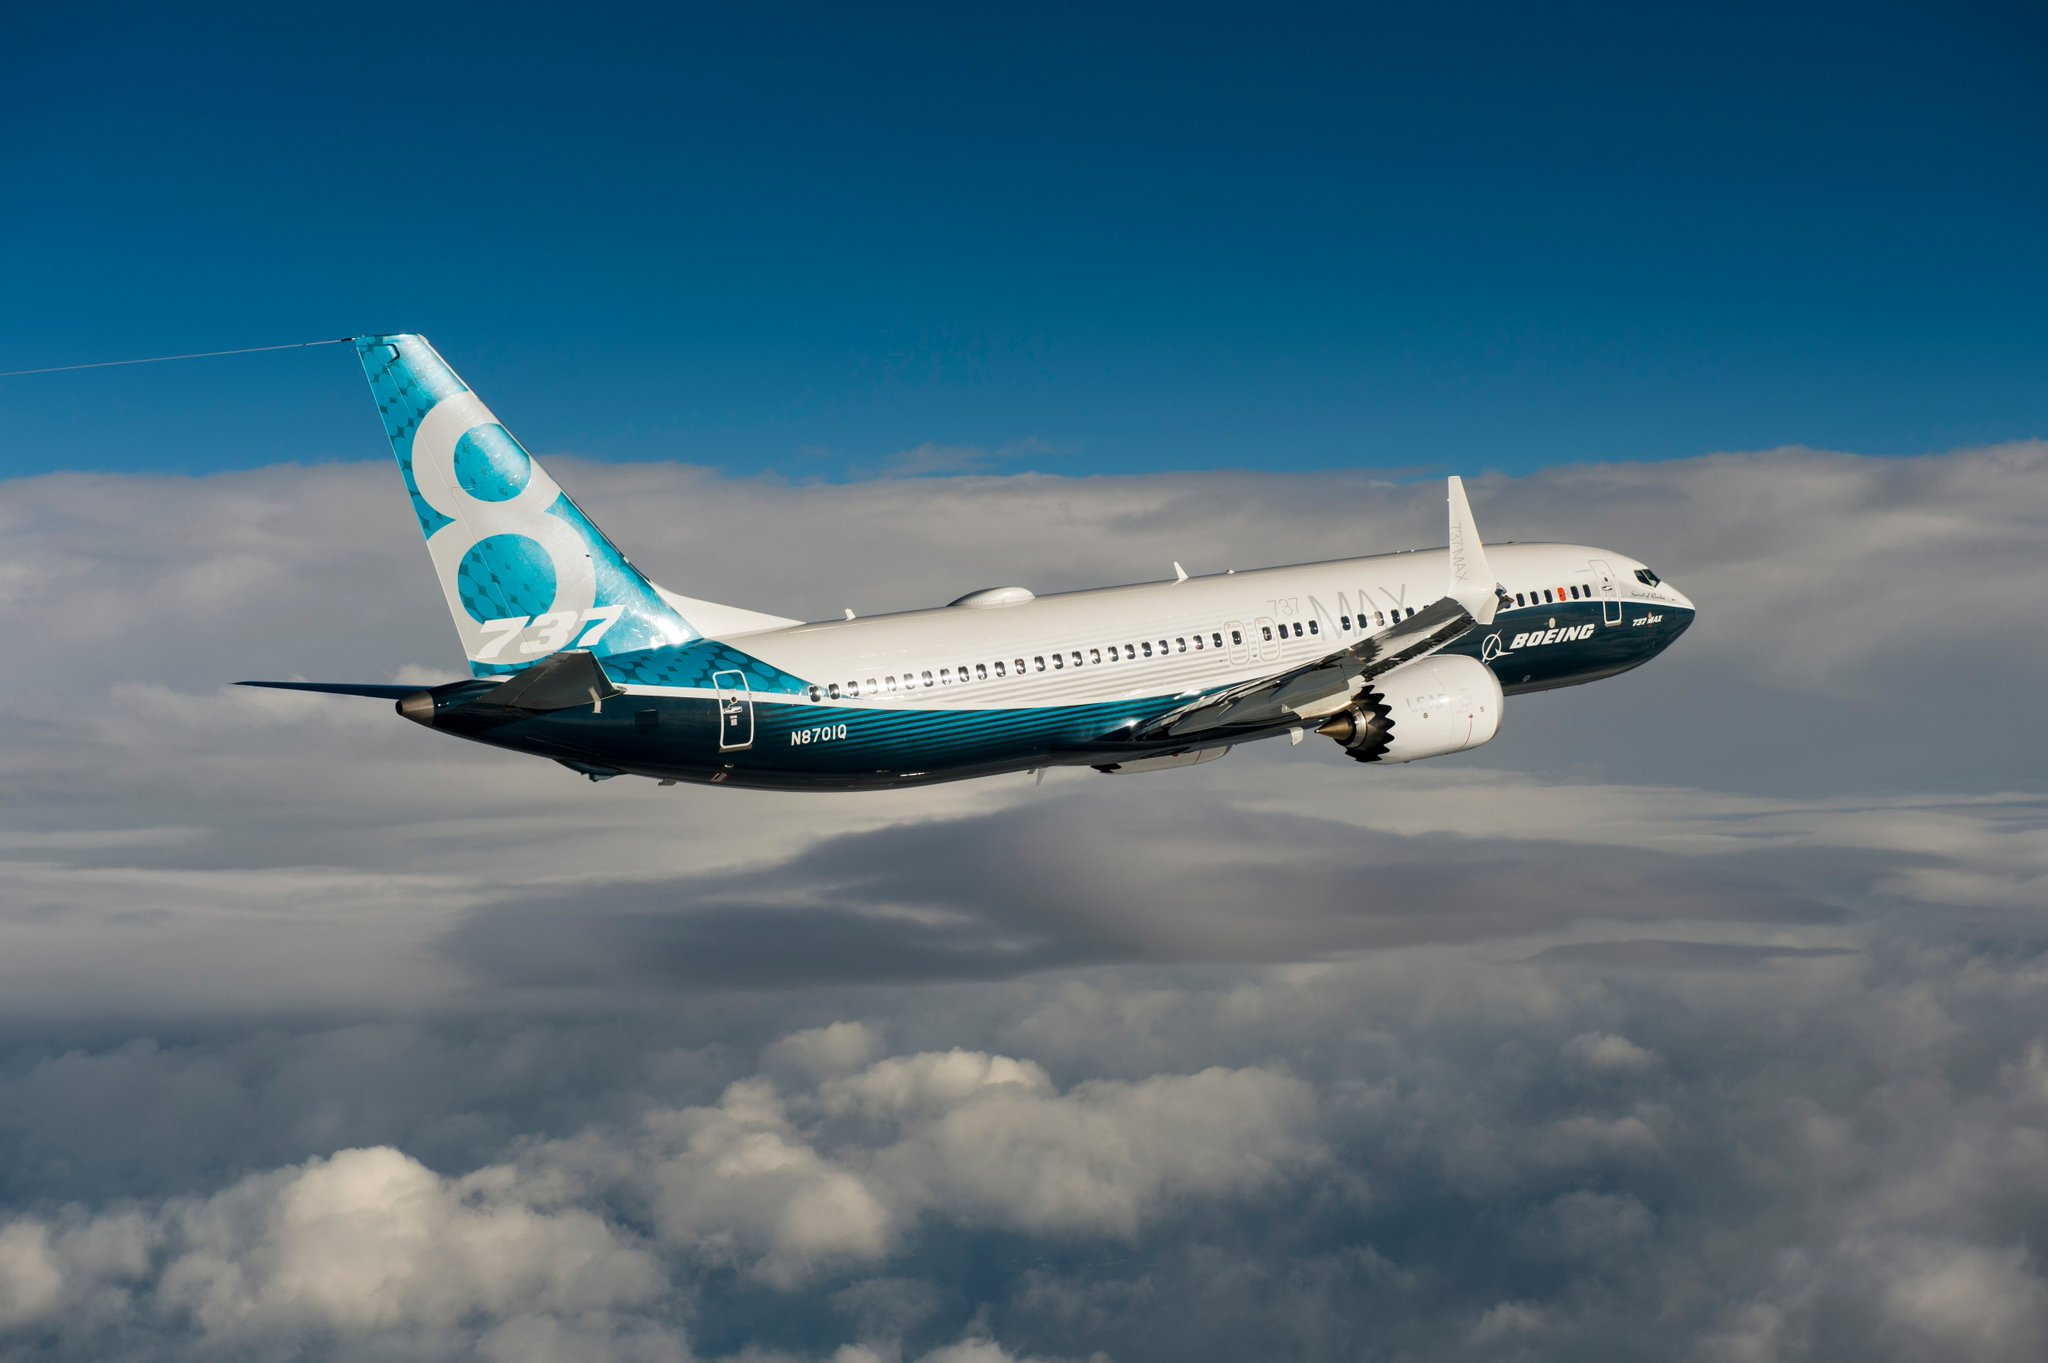 B737 MAX first flight